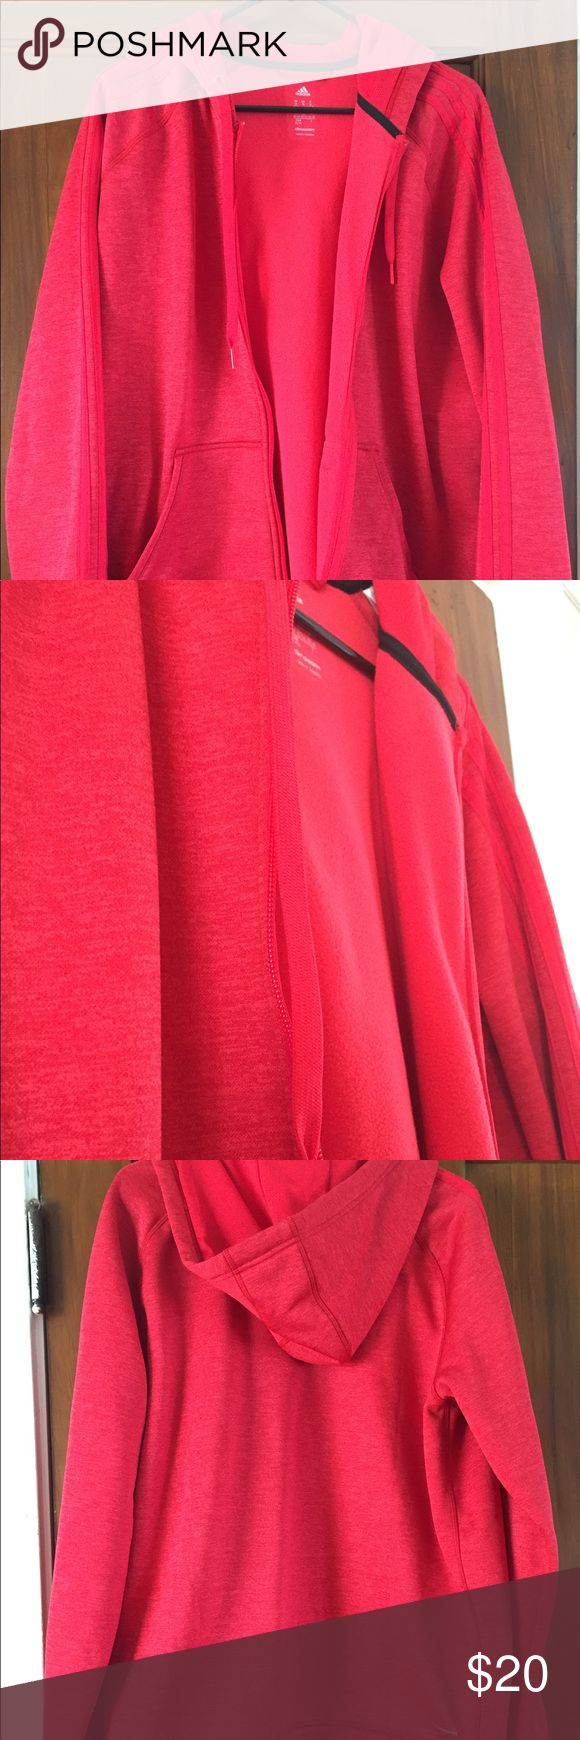 XL adidas zip up Red XL adidas zip up. Worn only a few times. Also has thumb holes for working out. adidas Jackets & Coats